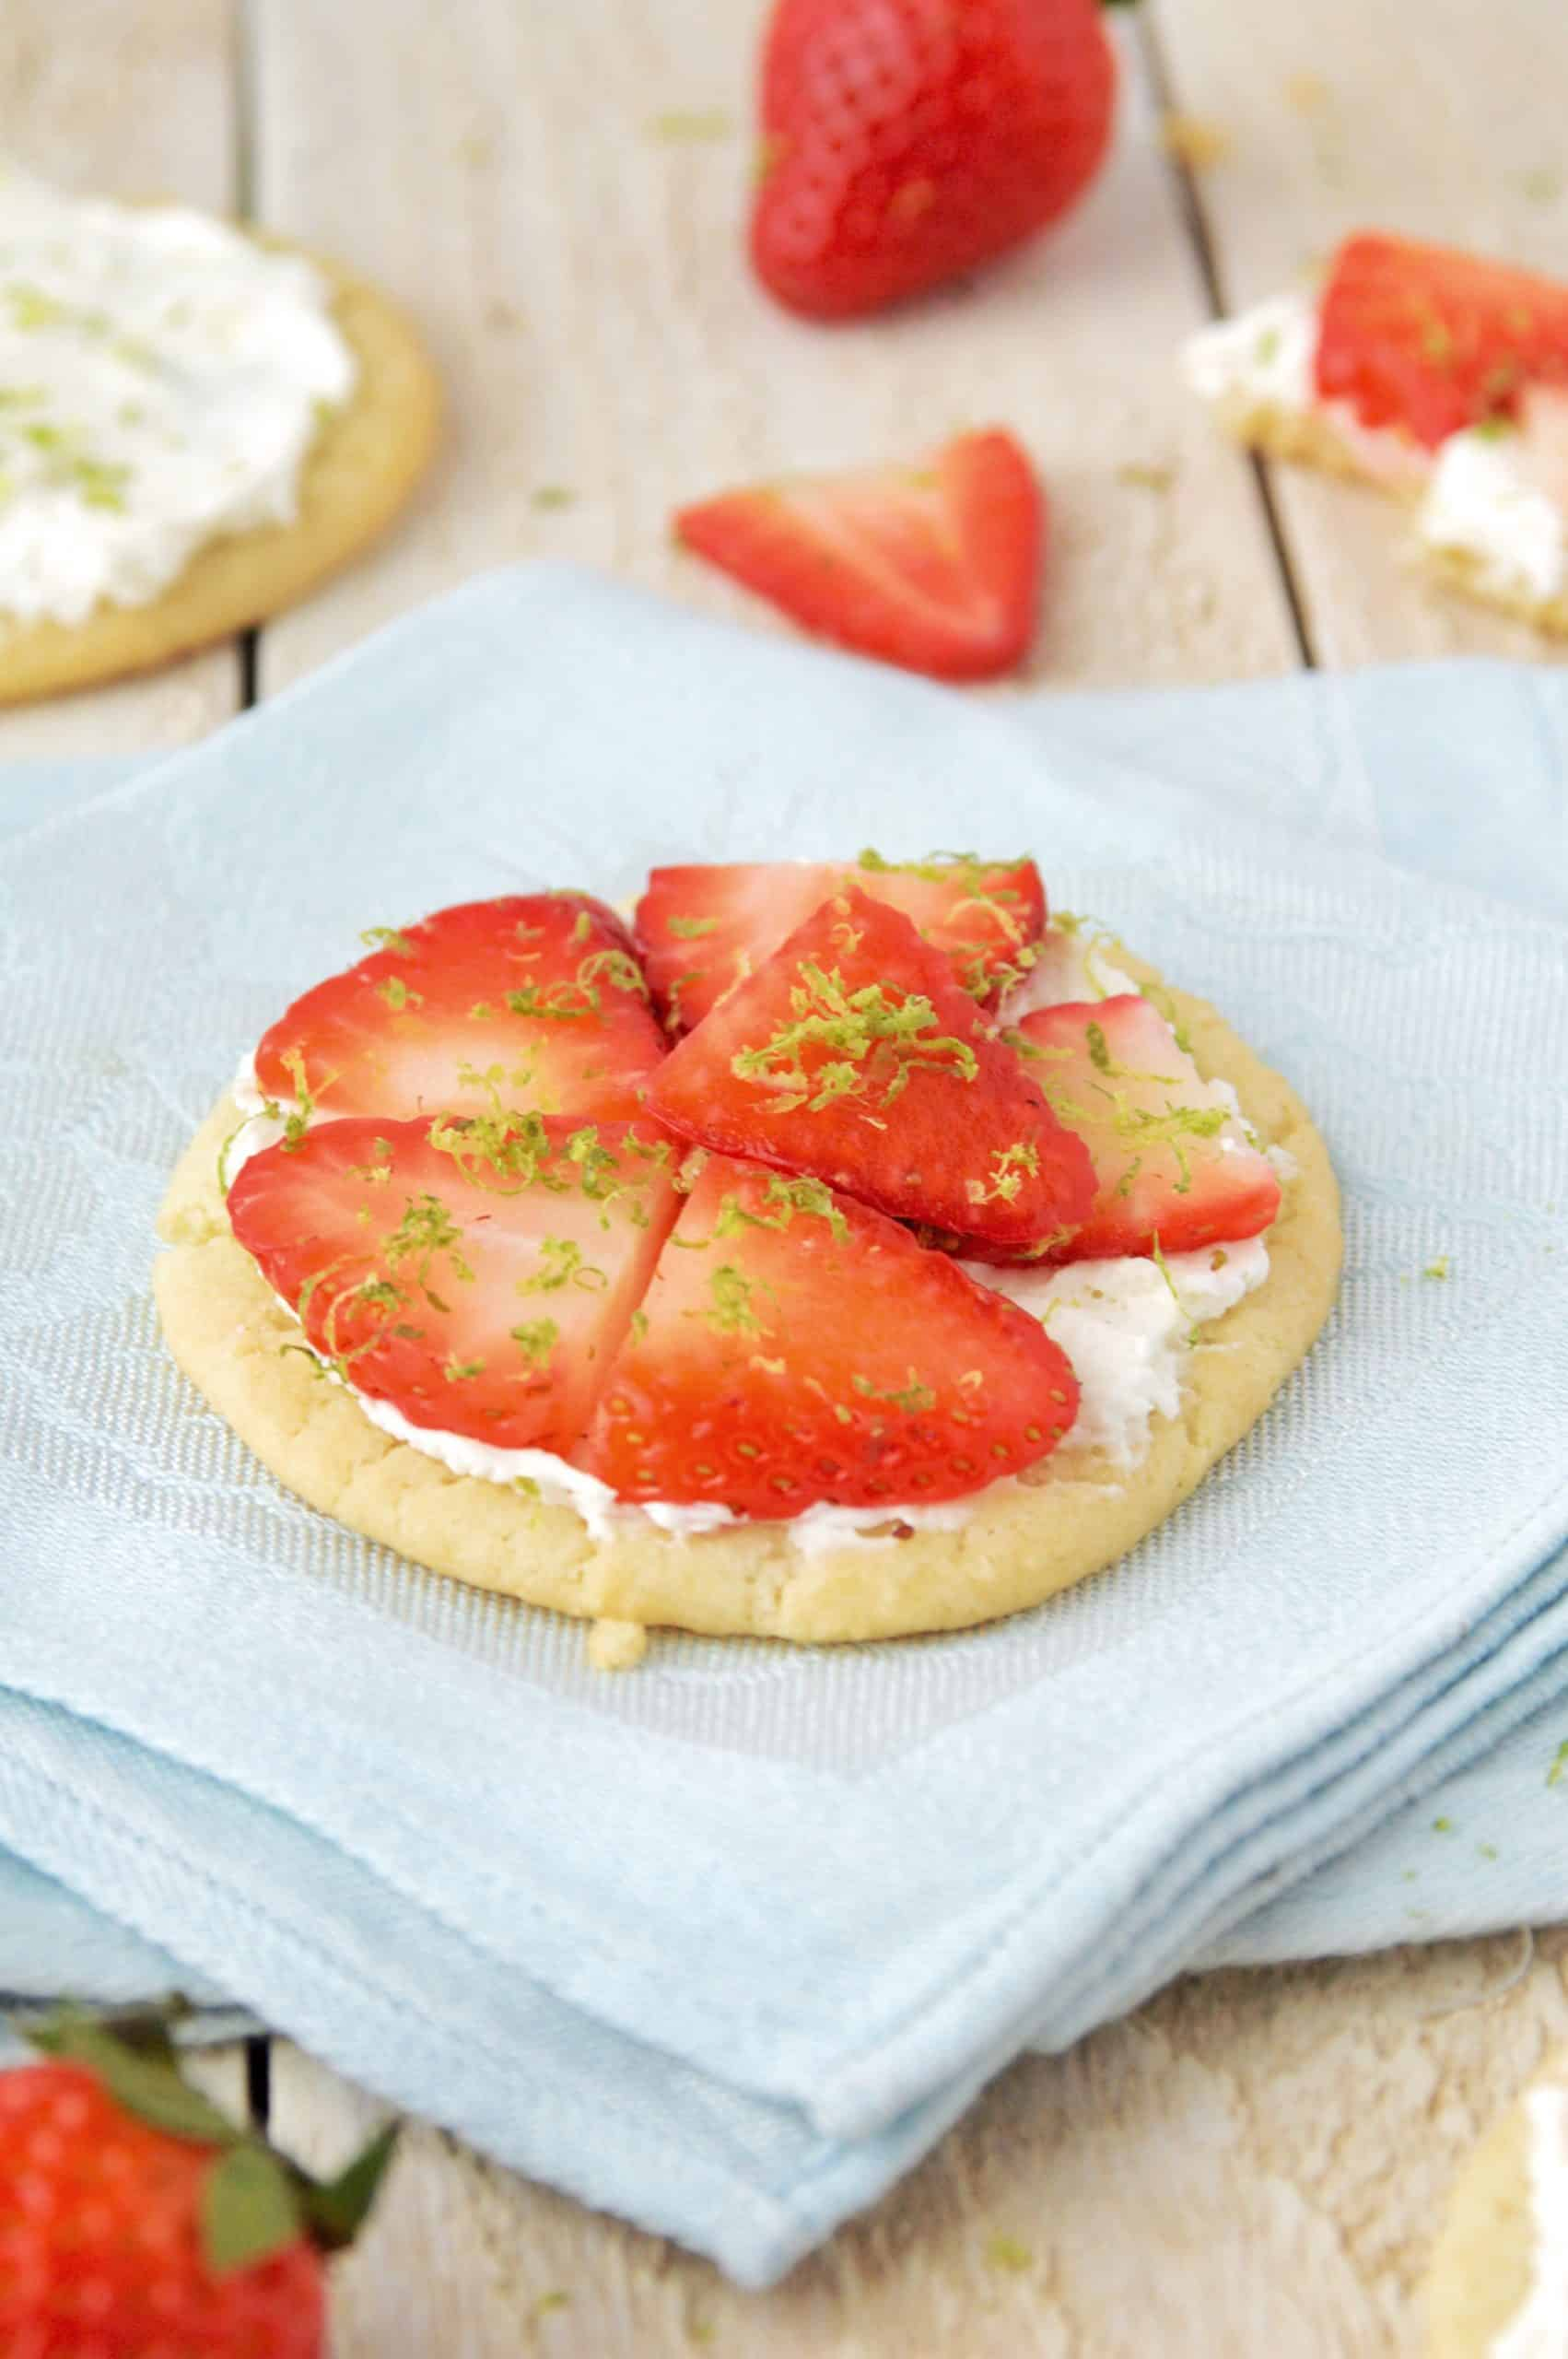 a sugar cookie topped with white cream, slices of strawberries, and lime zest on a blue linen napkin over a whitewashed wooden surface